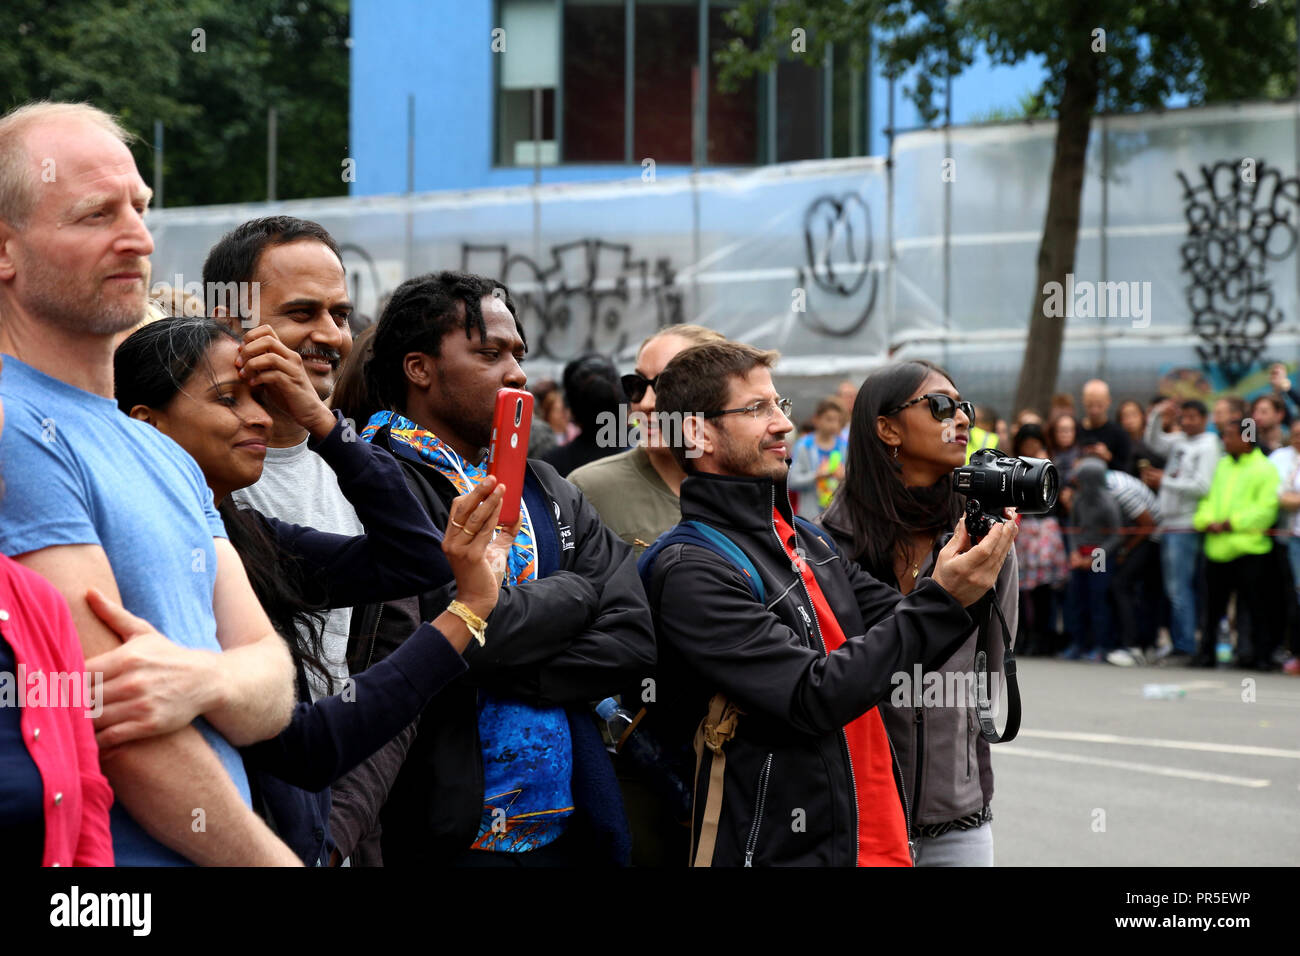 London, UK - August 27, 2018: Many spectators, audience and photographs happily greeted Notting Hill Carnival parade - Stock Image